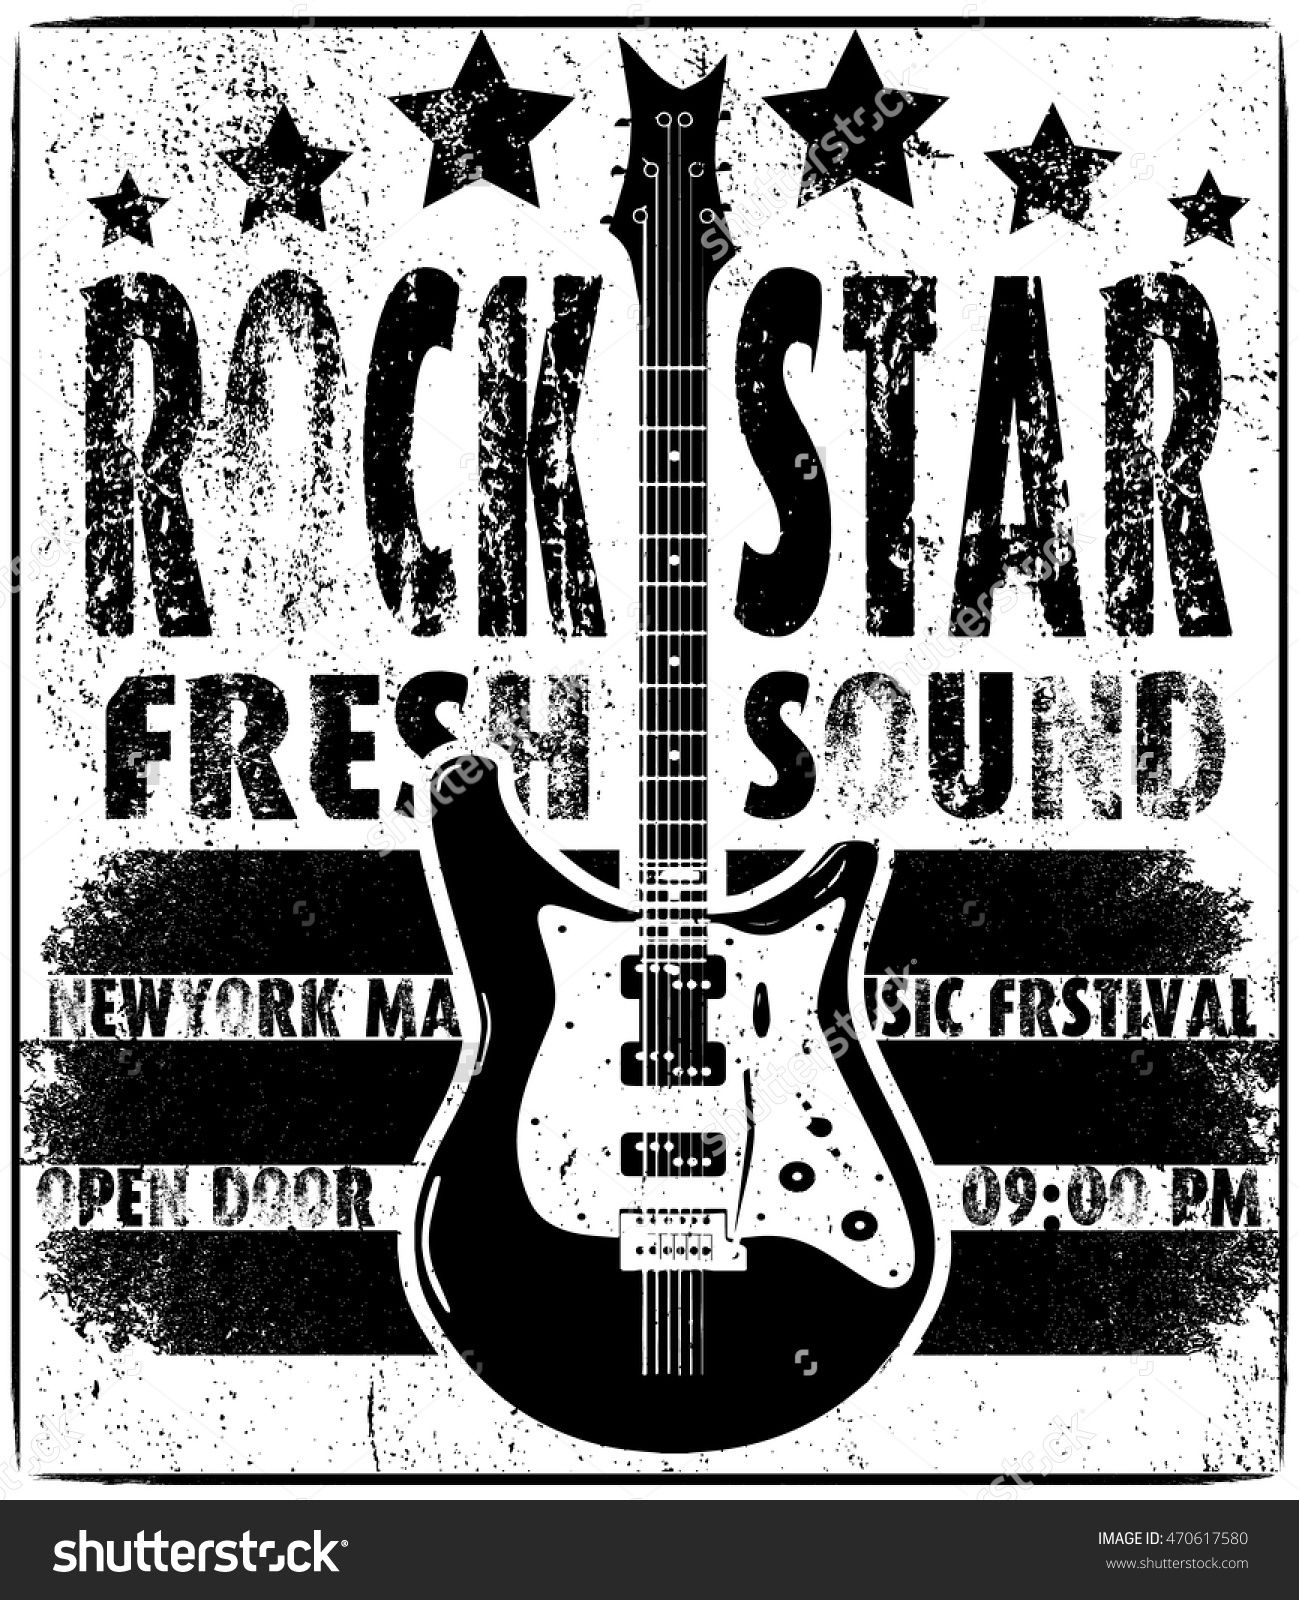 cool grunge hand drawn electric guitar with distorted text in it  rock star  eps10 vector image